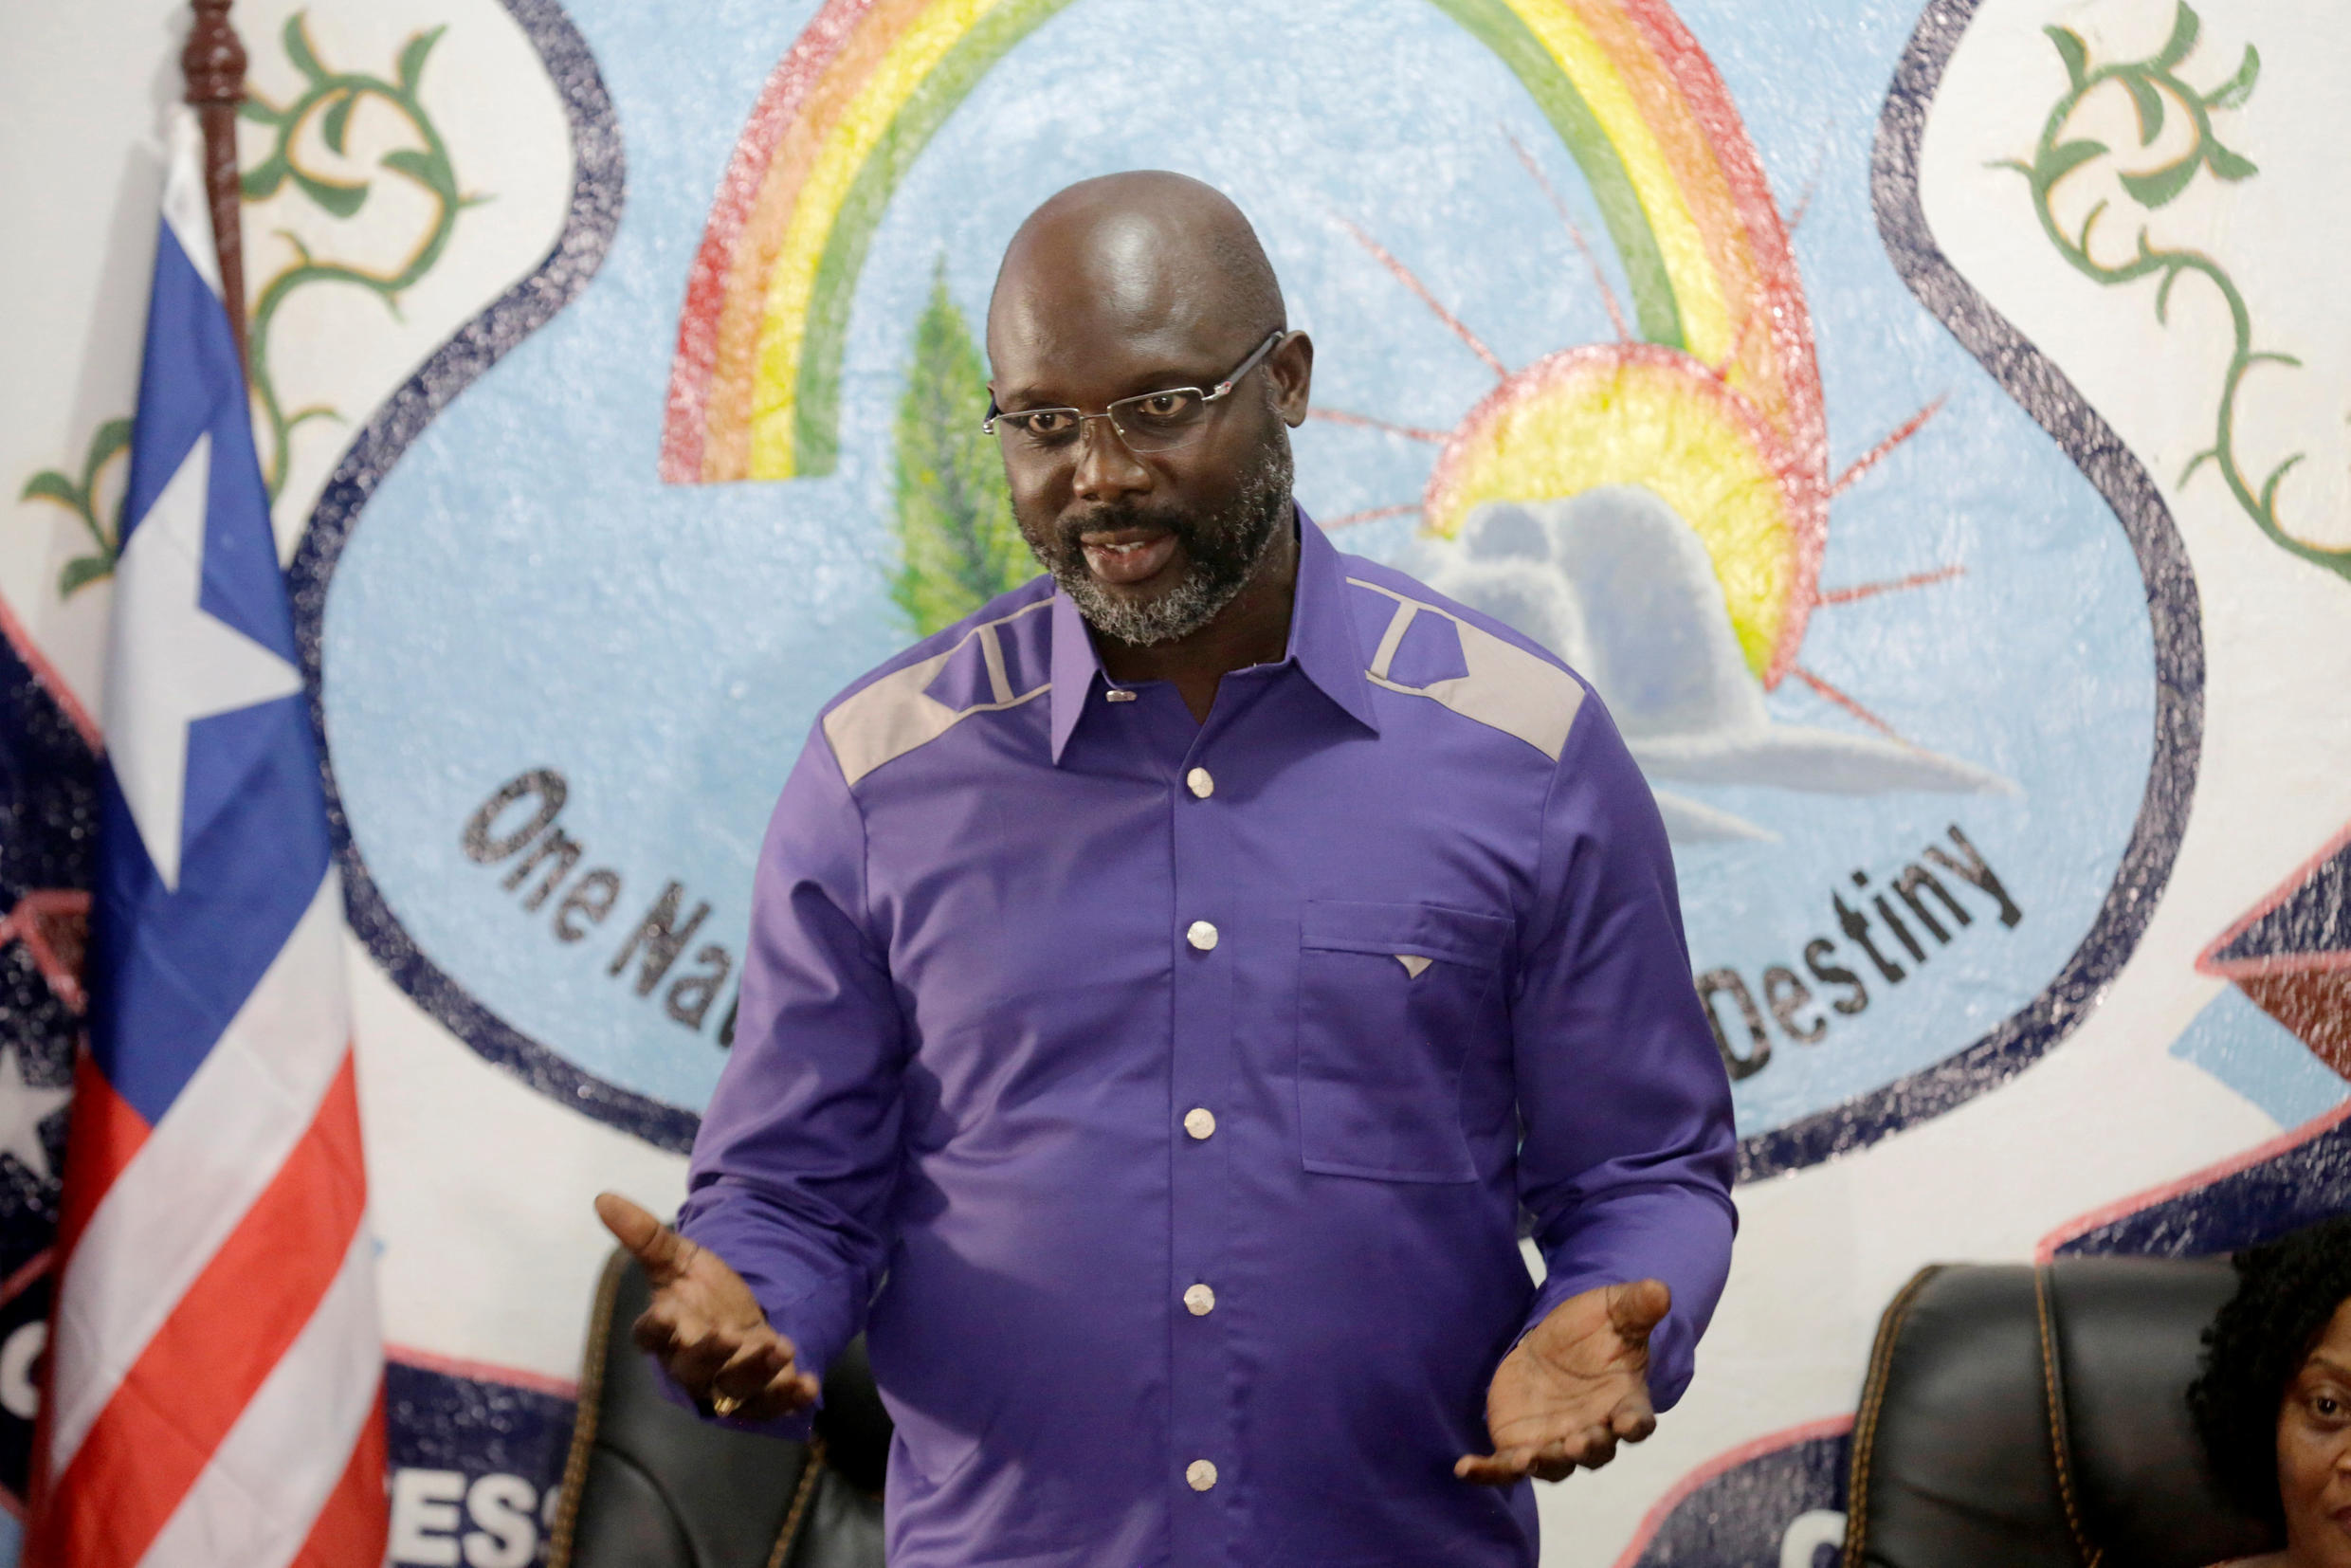 President of Liberia, George Weah, shortly after his election victory, 30 December 2017